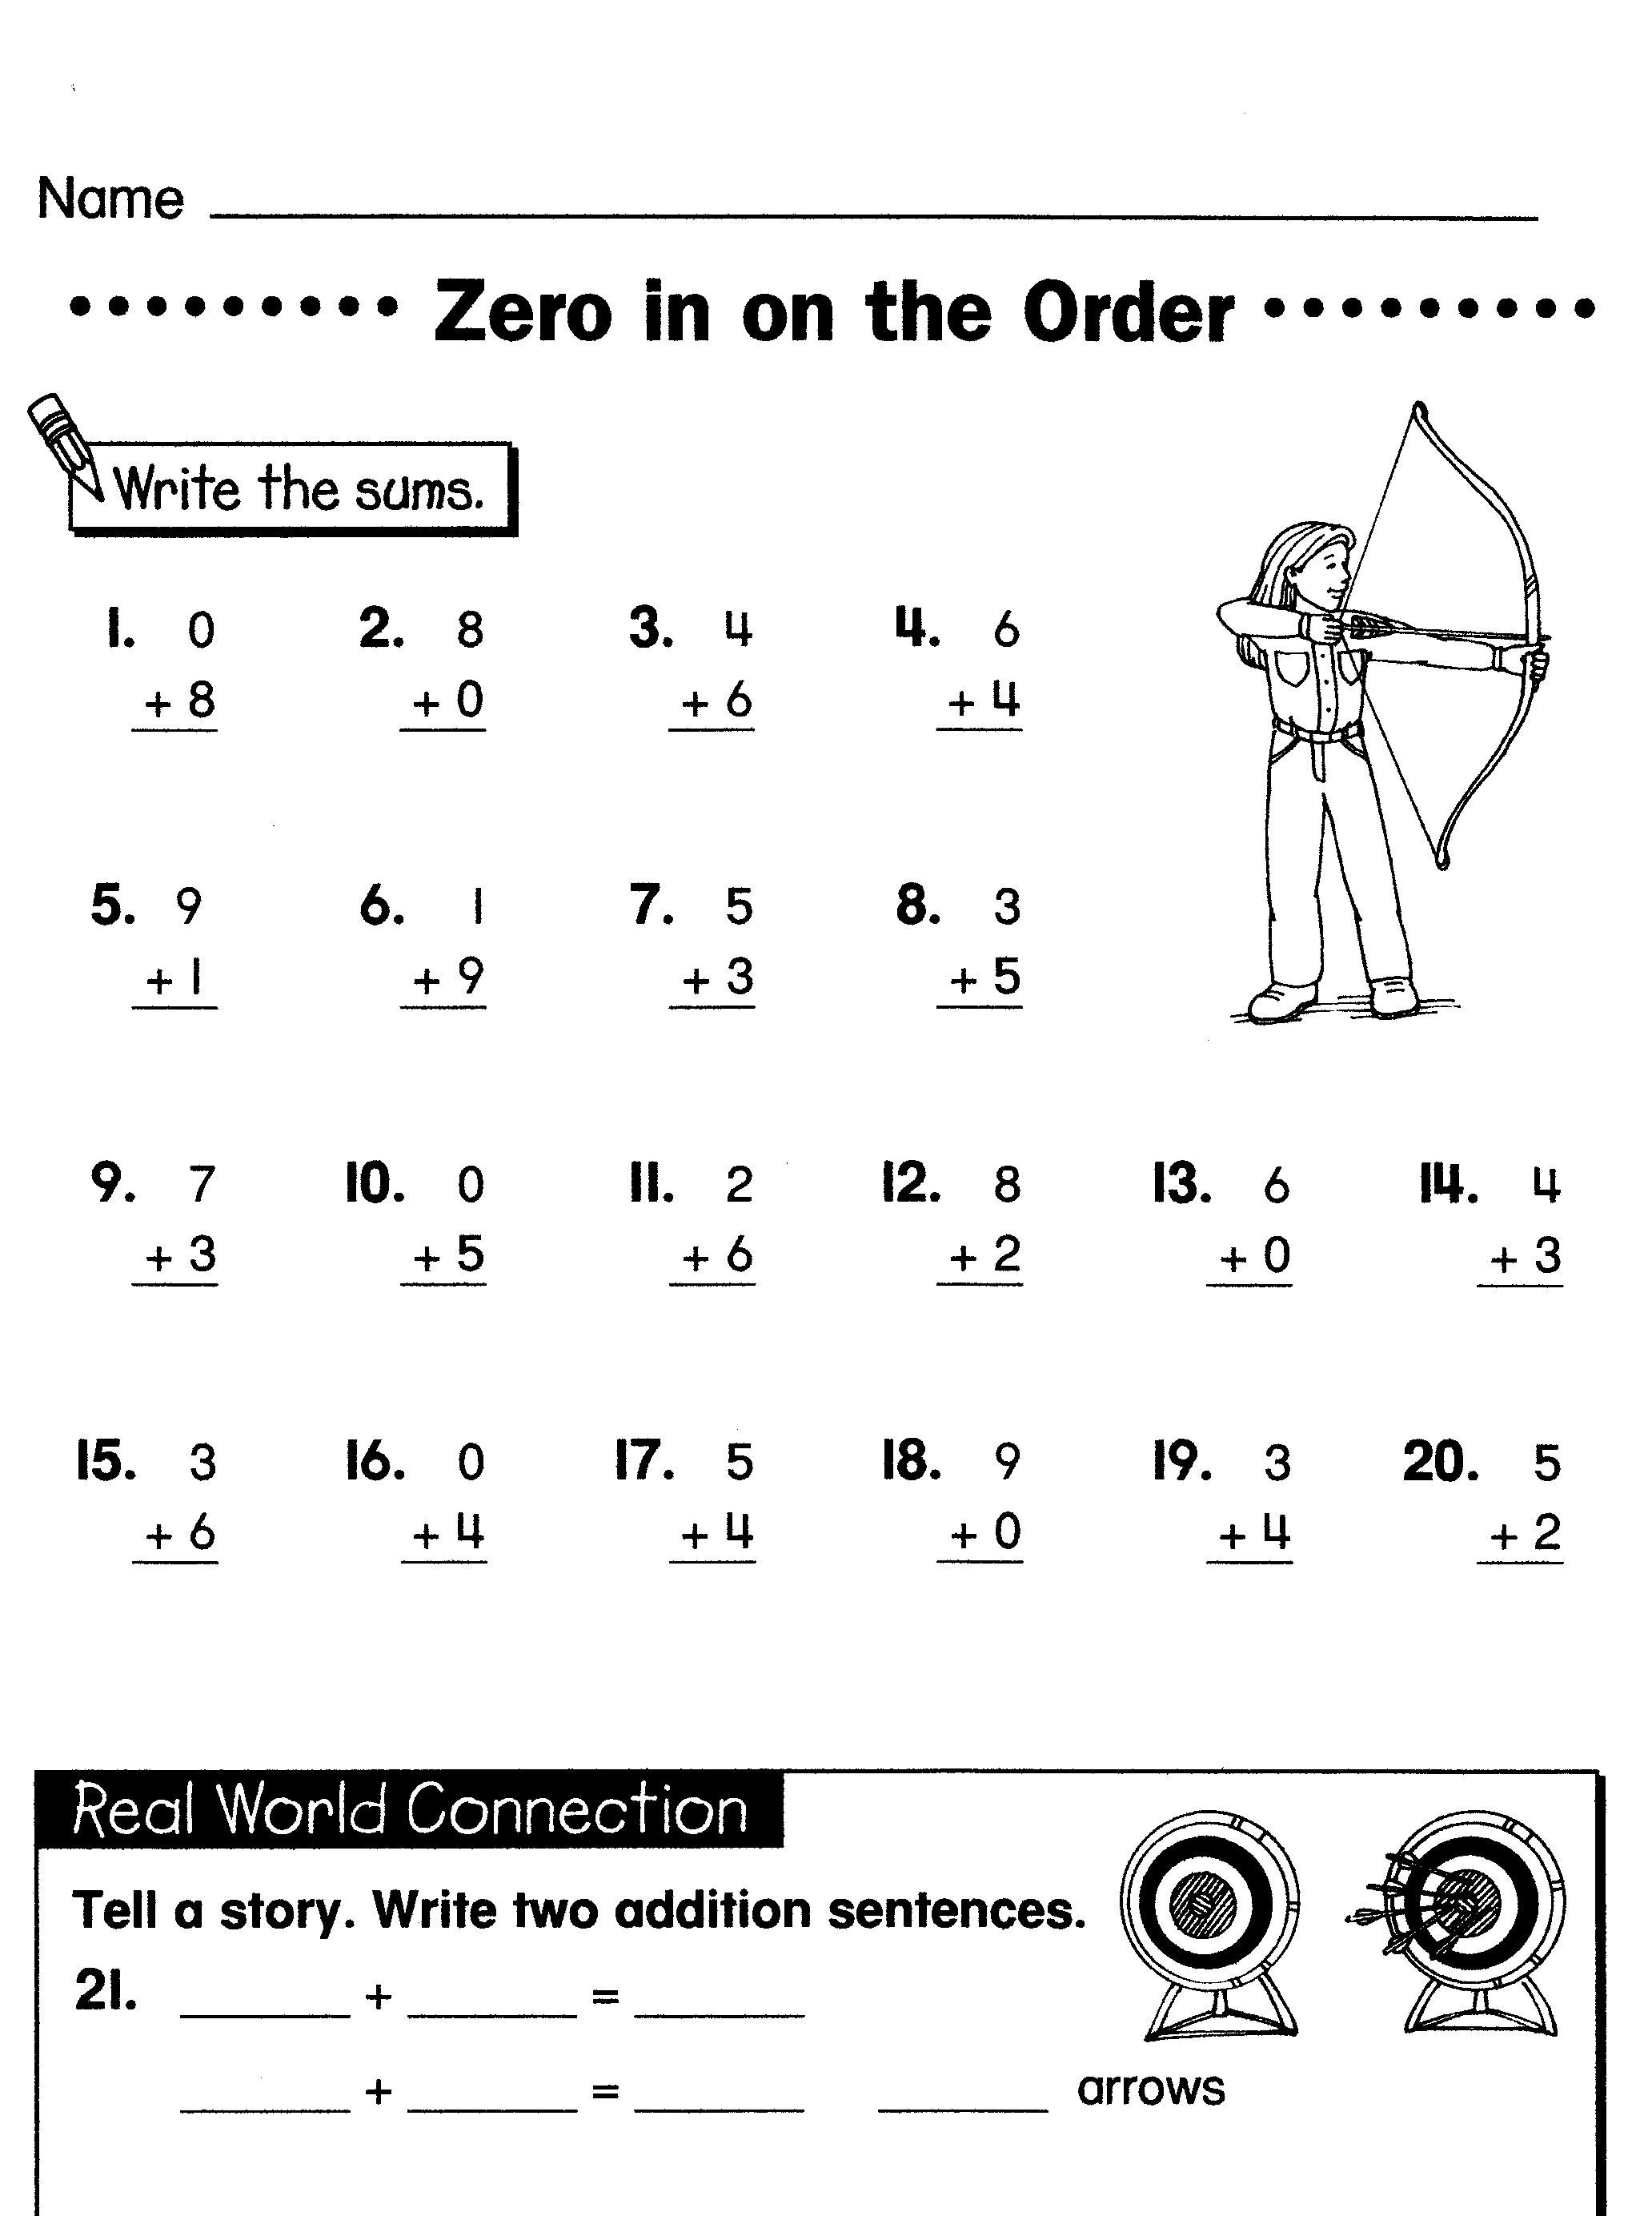 Worksheets Free Common Core Math Worksheets For First Grade math sheets for grade 1 kiddo shelter kids worksheets printable to help your first elementary school learning mathematics effectively include the worksheet engl